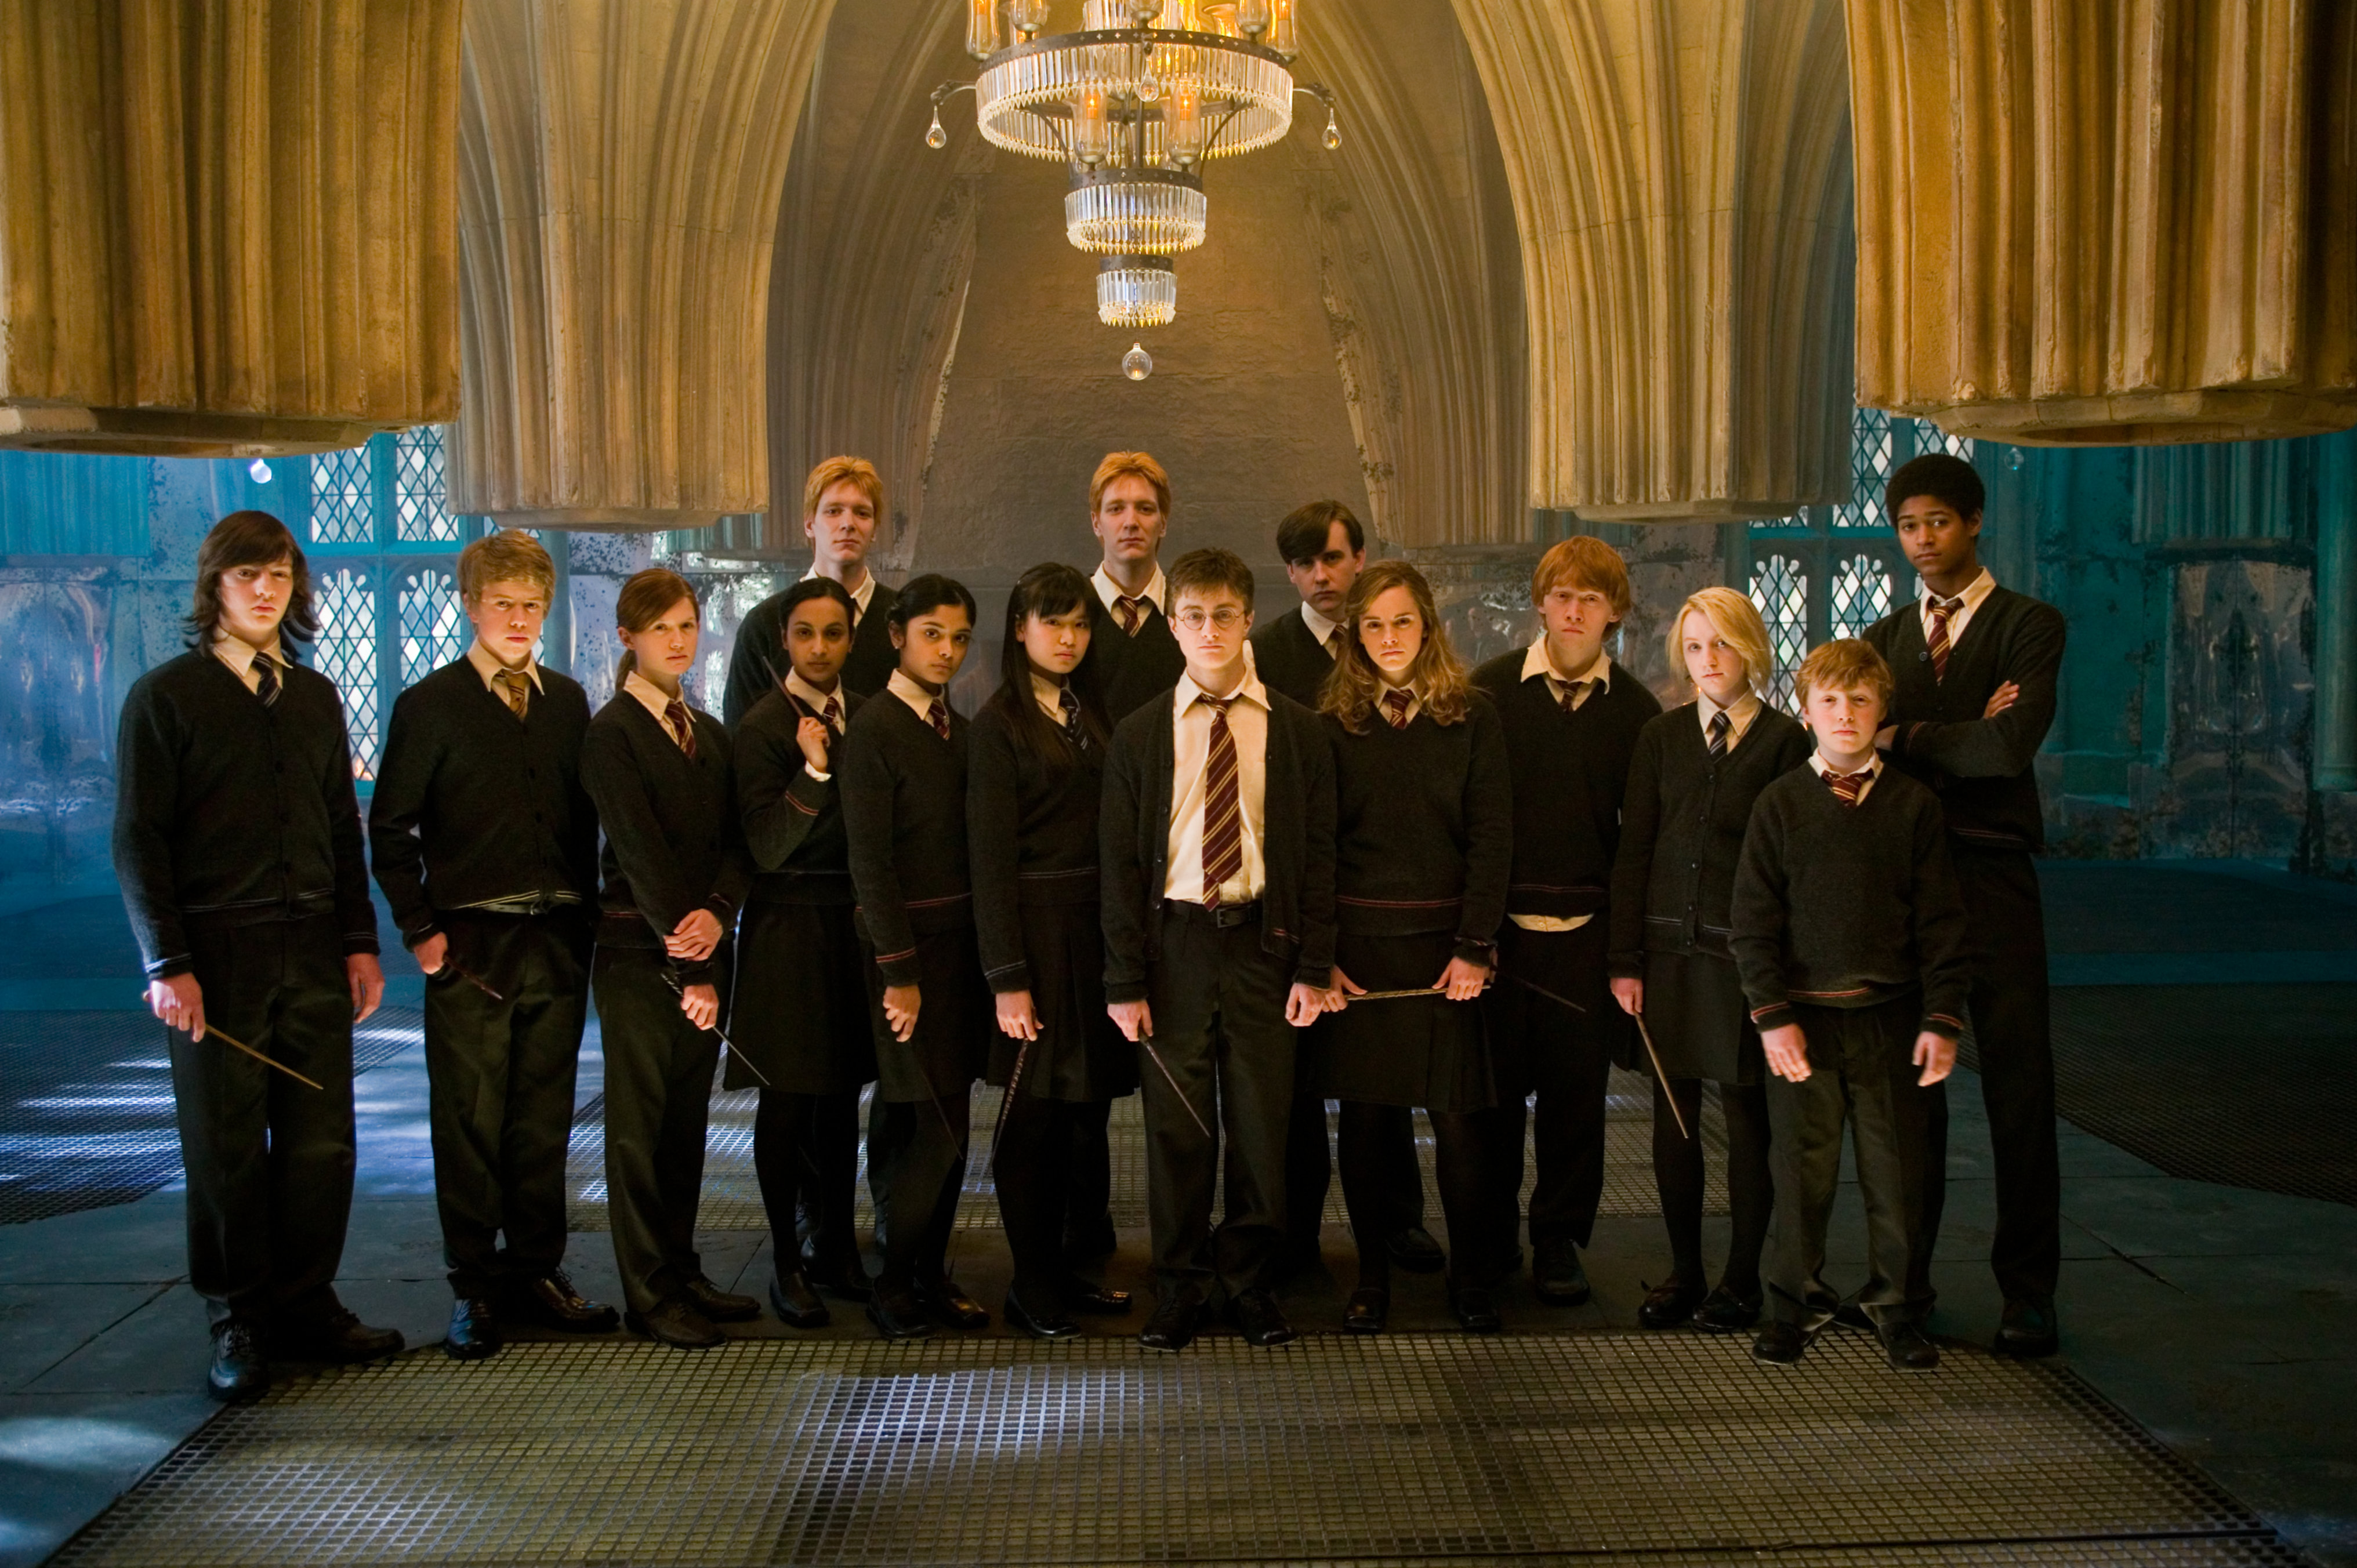 Harry Potter Camera Crew In View : Ultimate guide to camera shots types of shots and angles in film